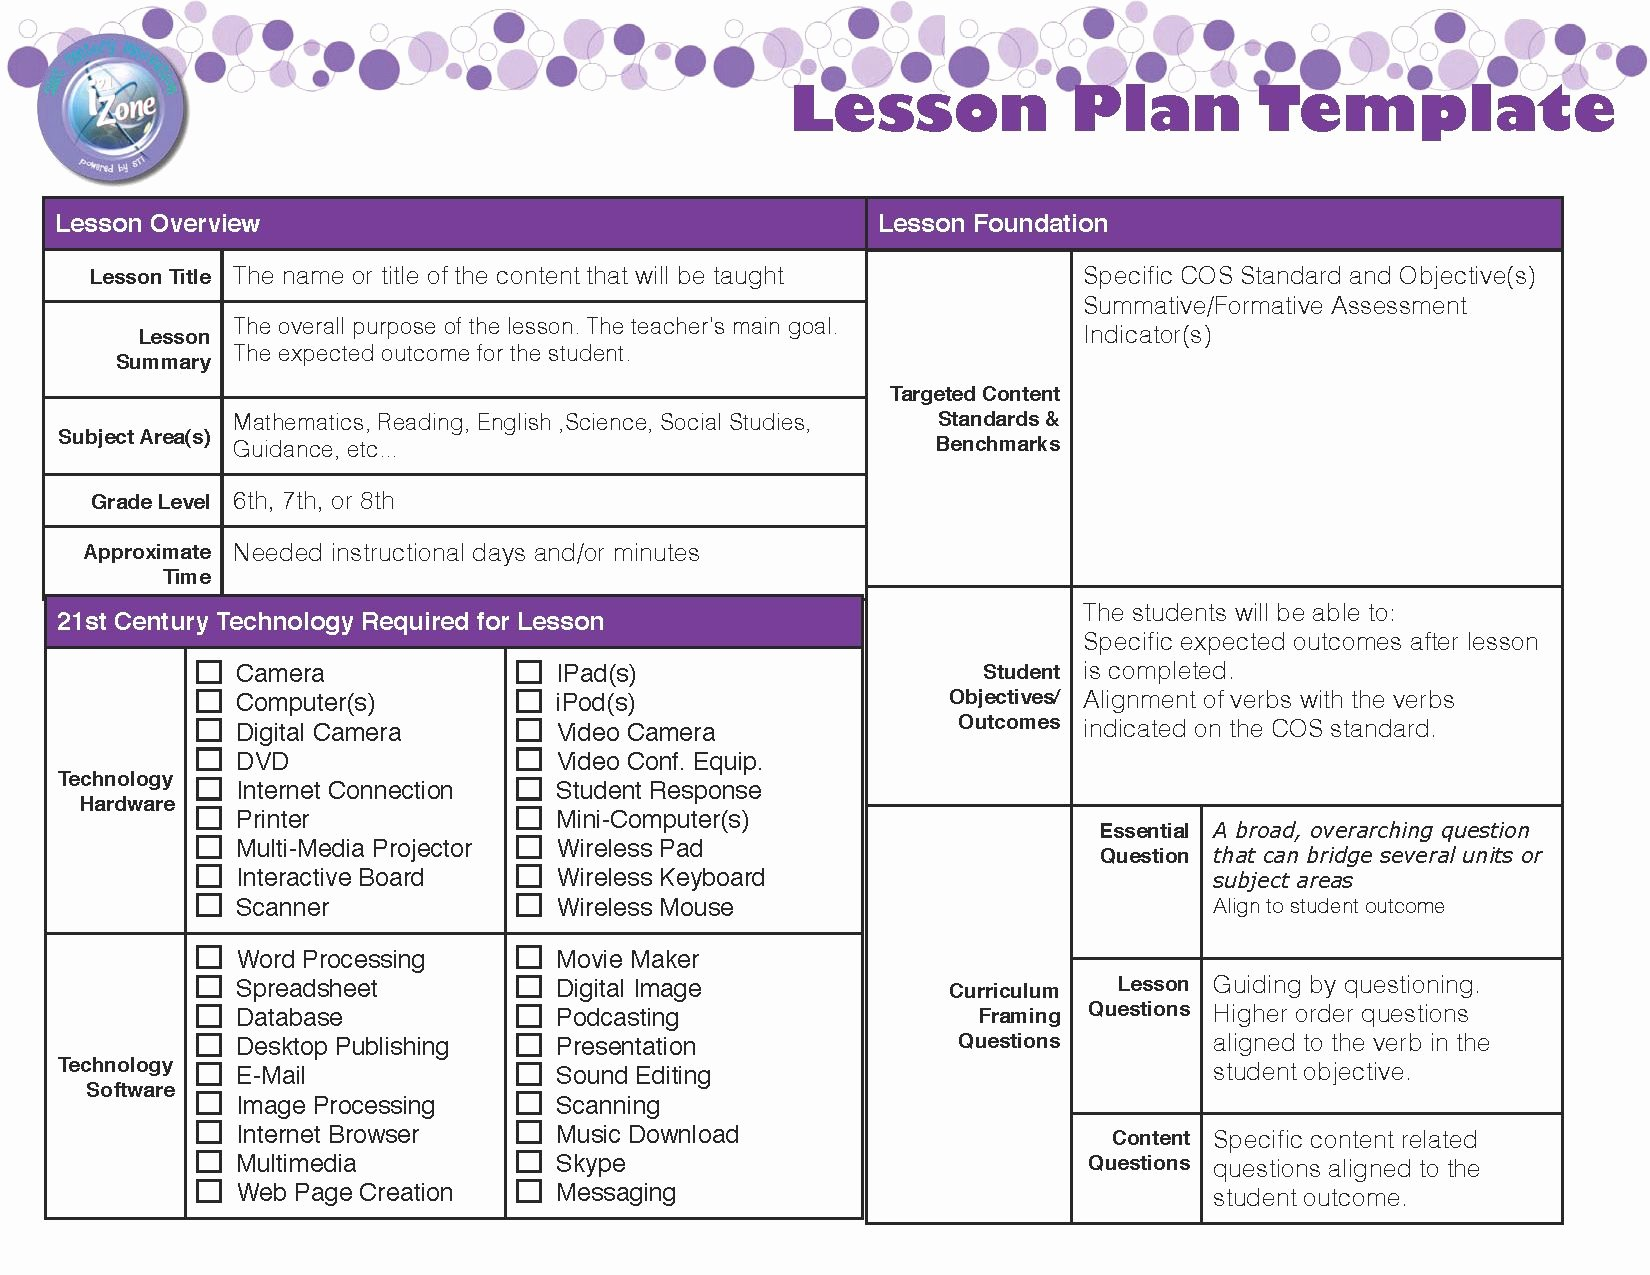 Lesson Plan Template College Awesome Lesson Plan Template